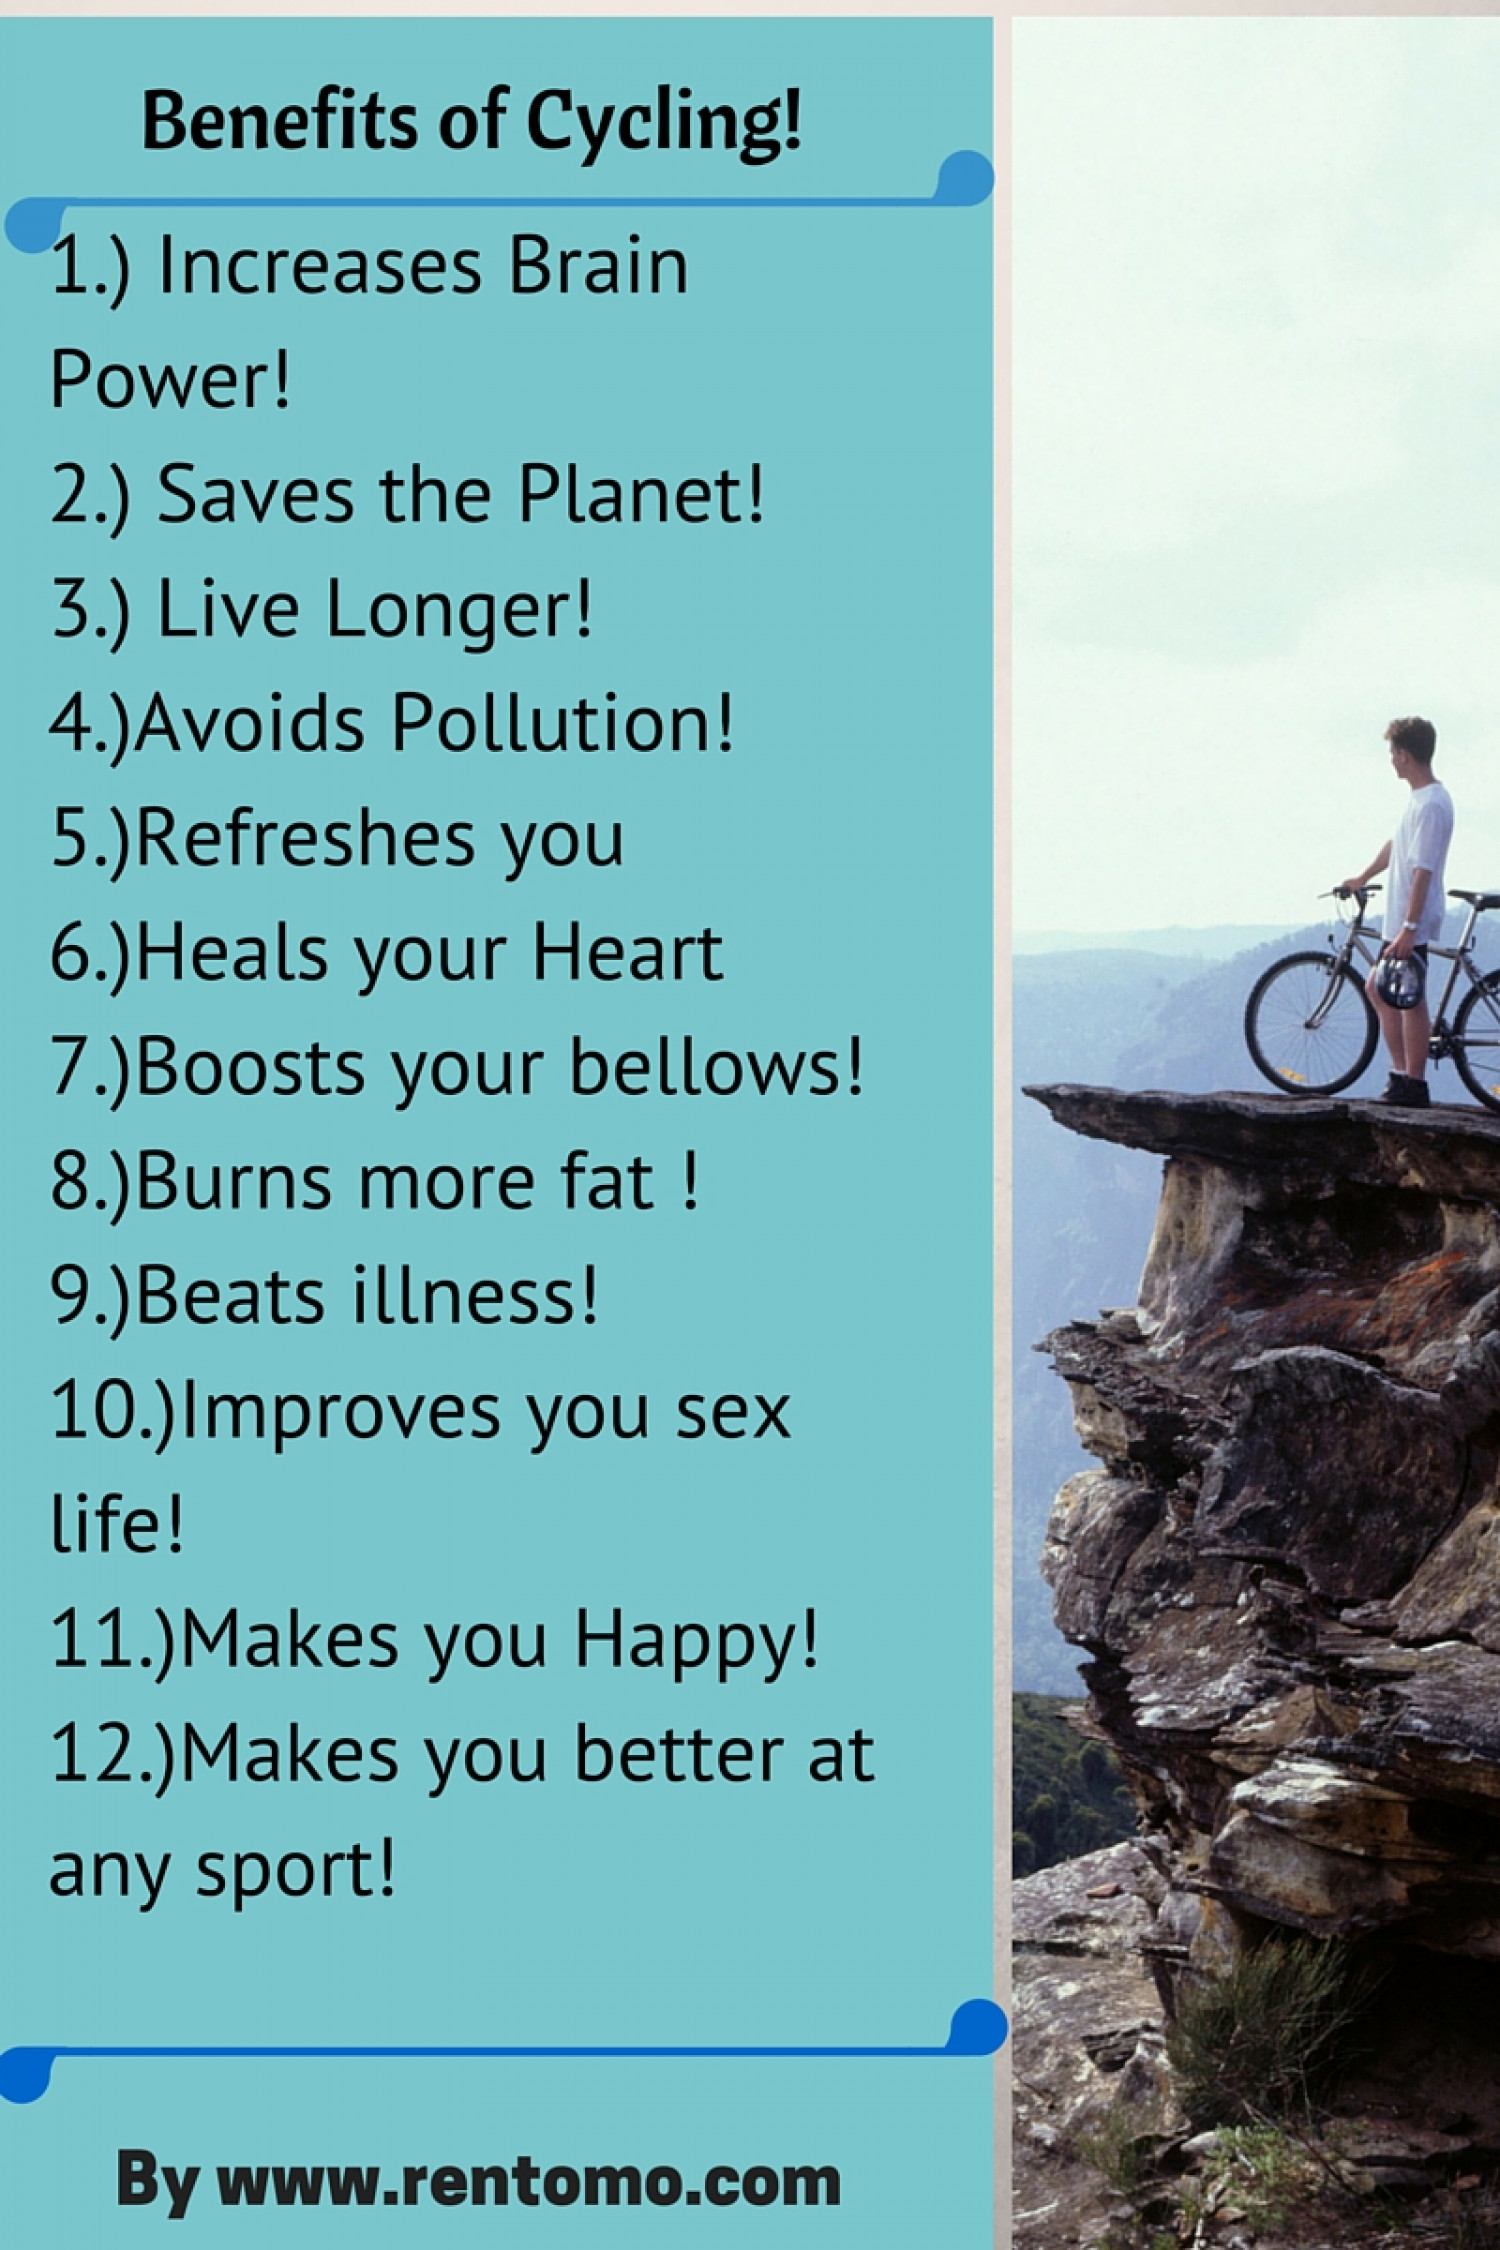 benefits of cycling by www.rentomo.com Infographic